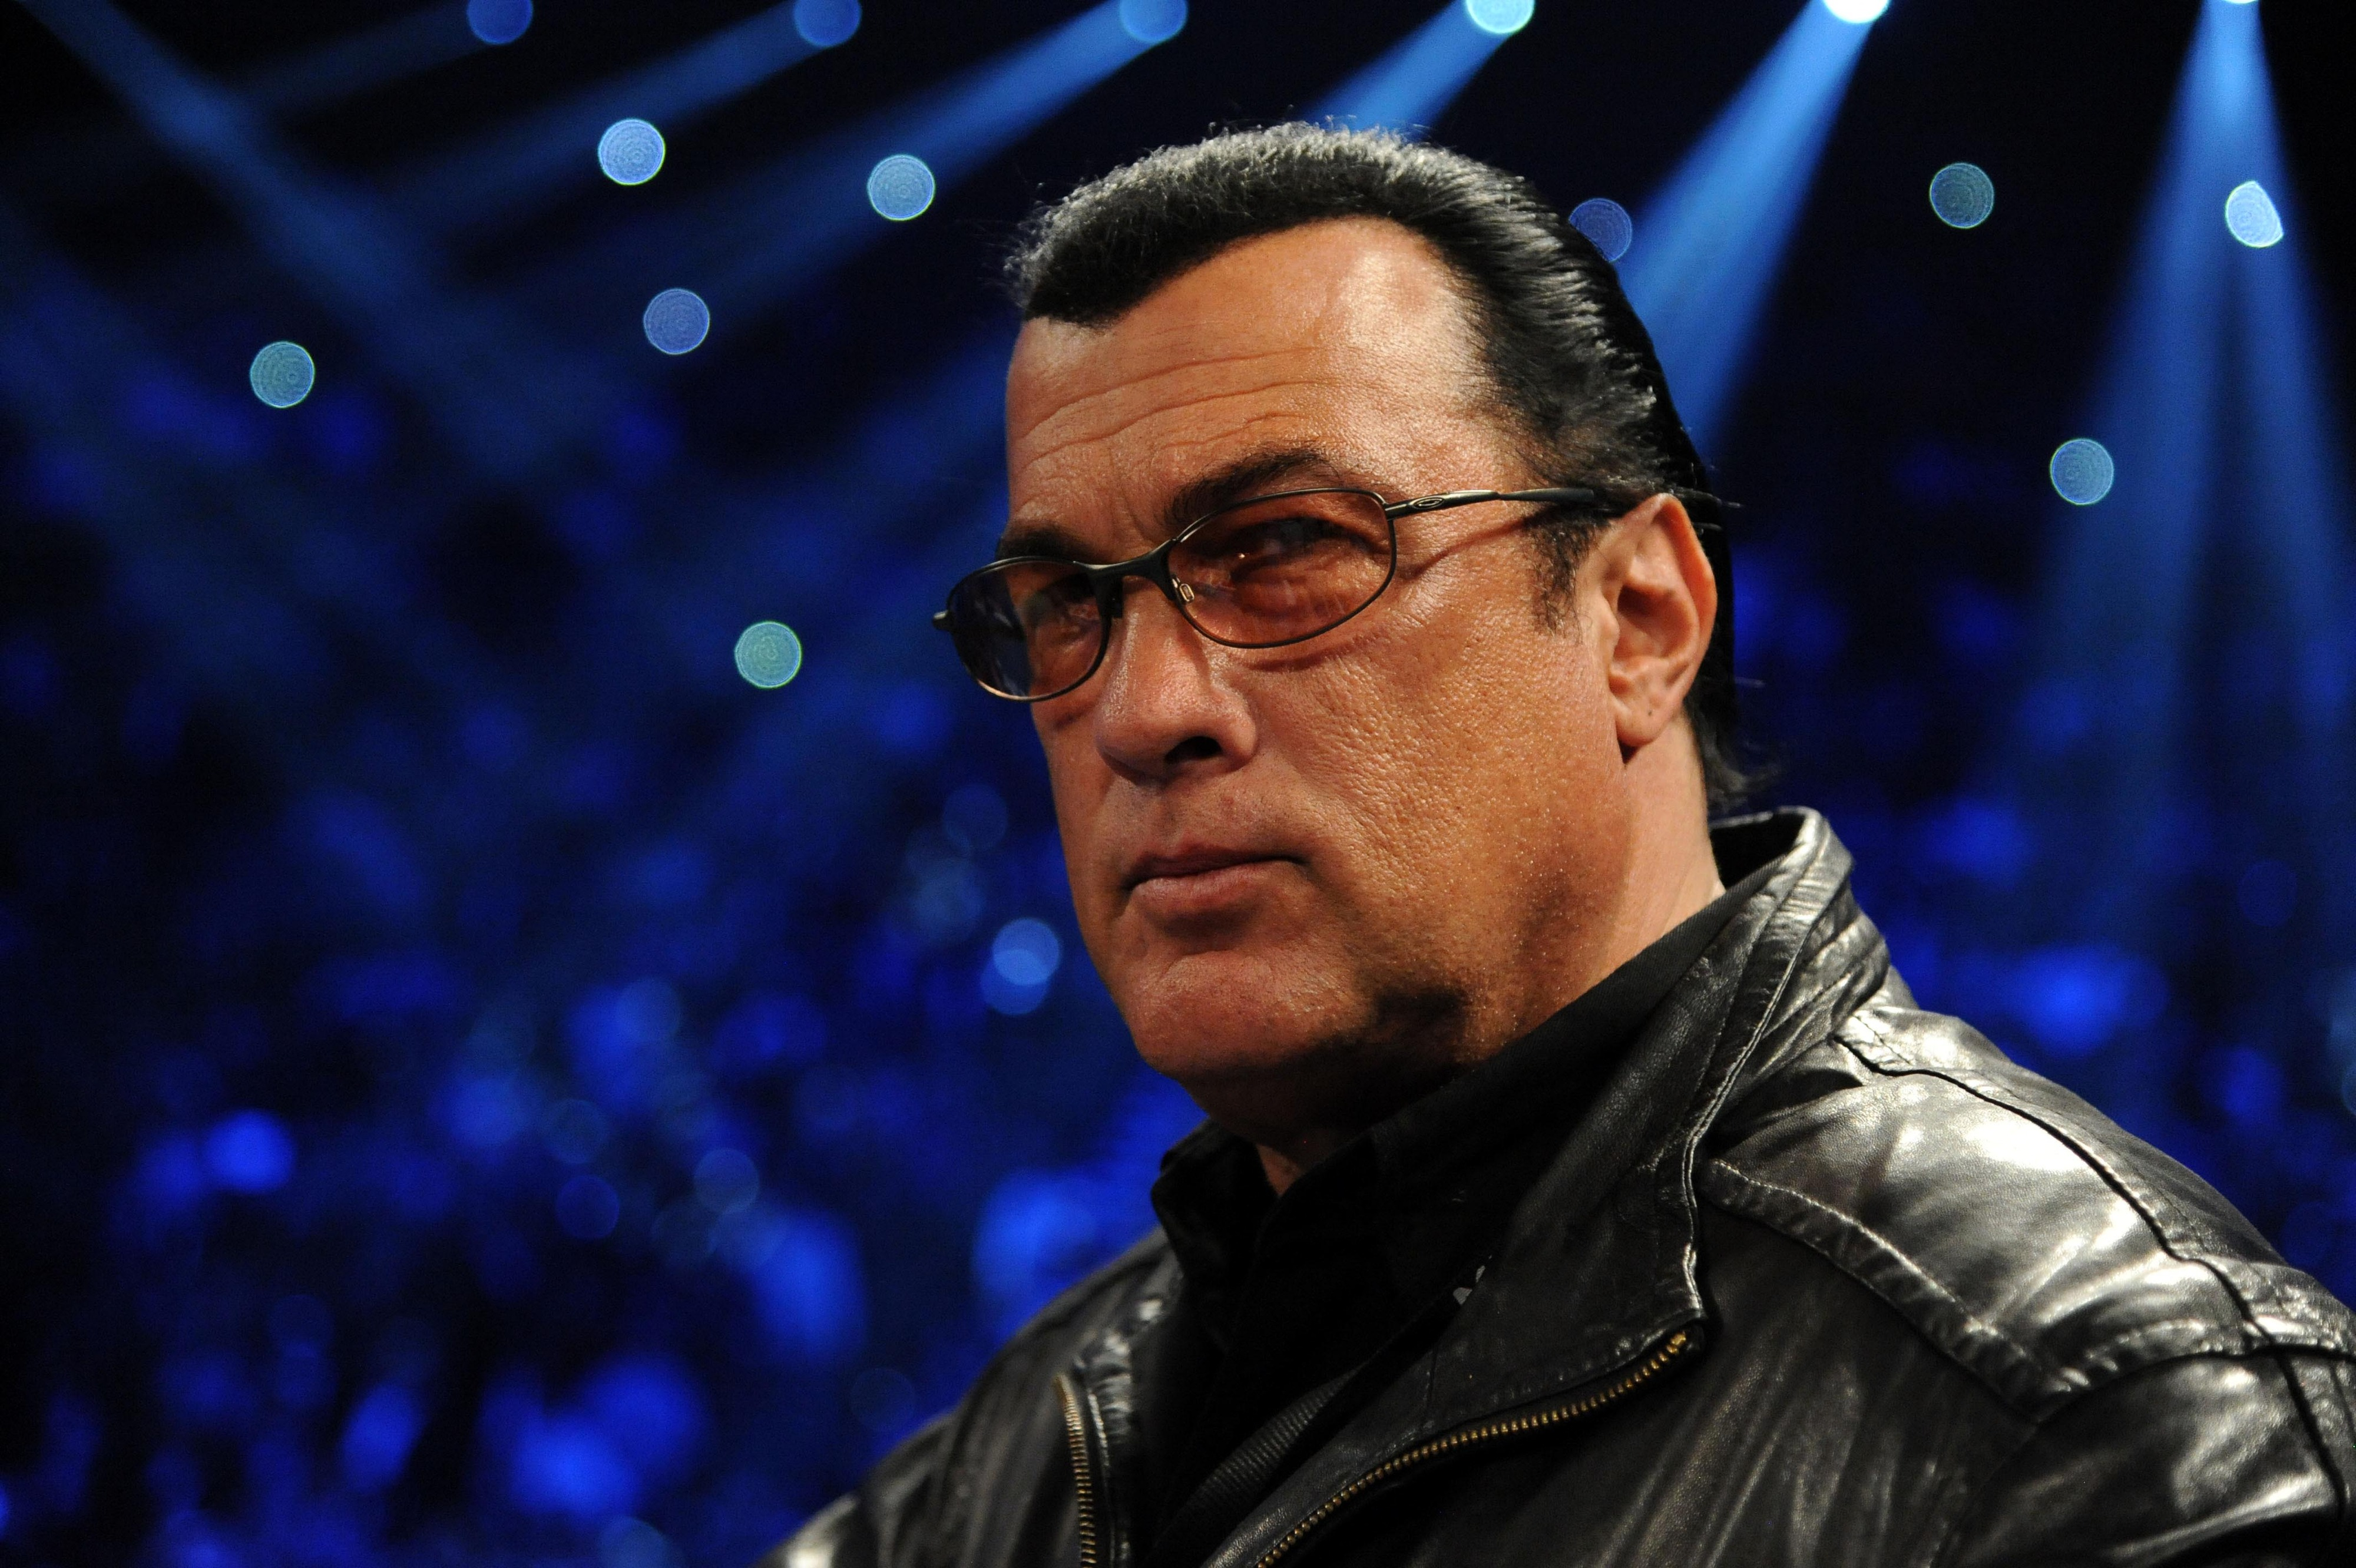 MMA hanger on Steven Seagal skipped the UFC for Pacquiao vs Marquez last night.